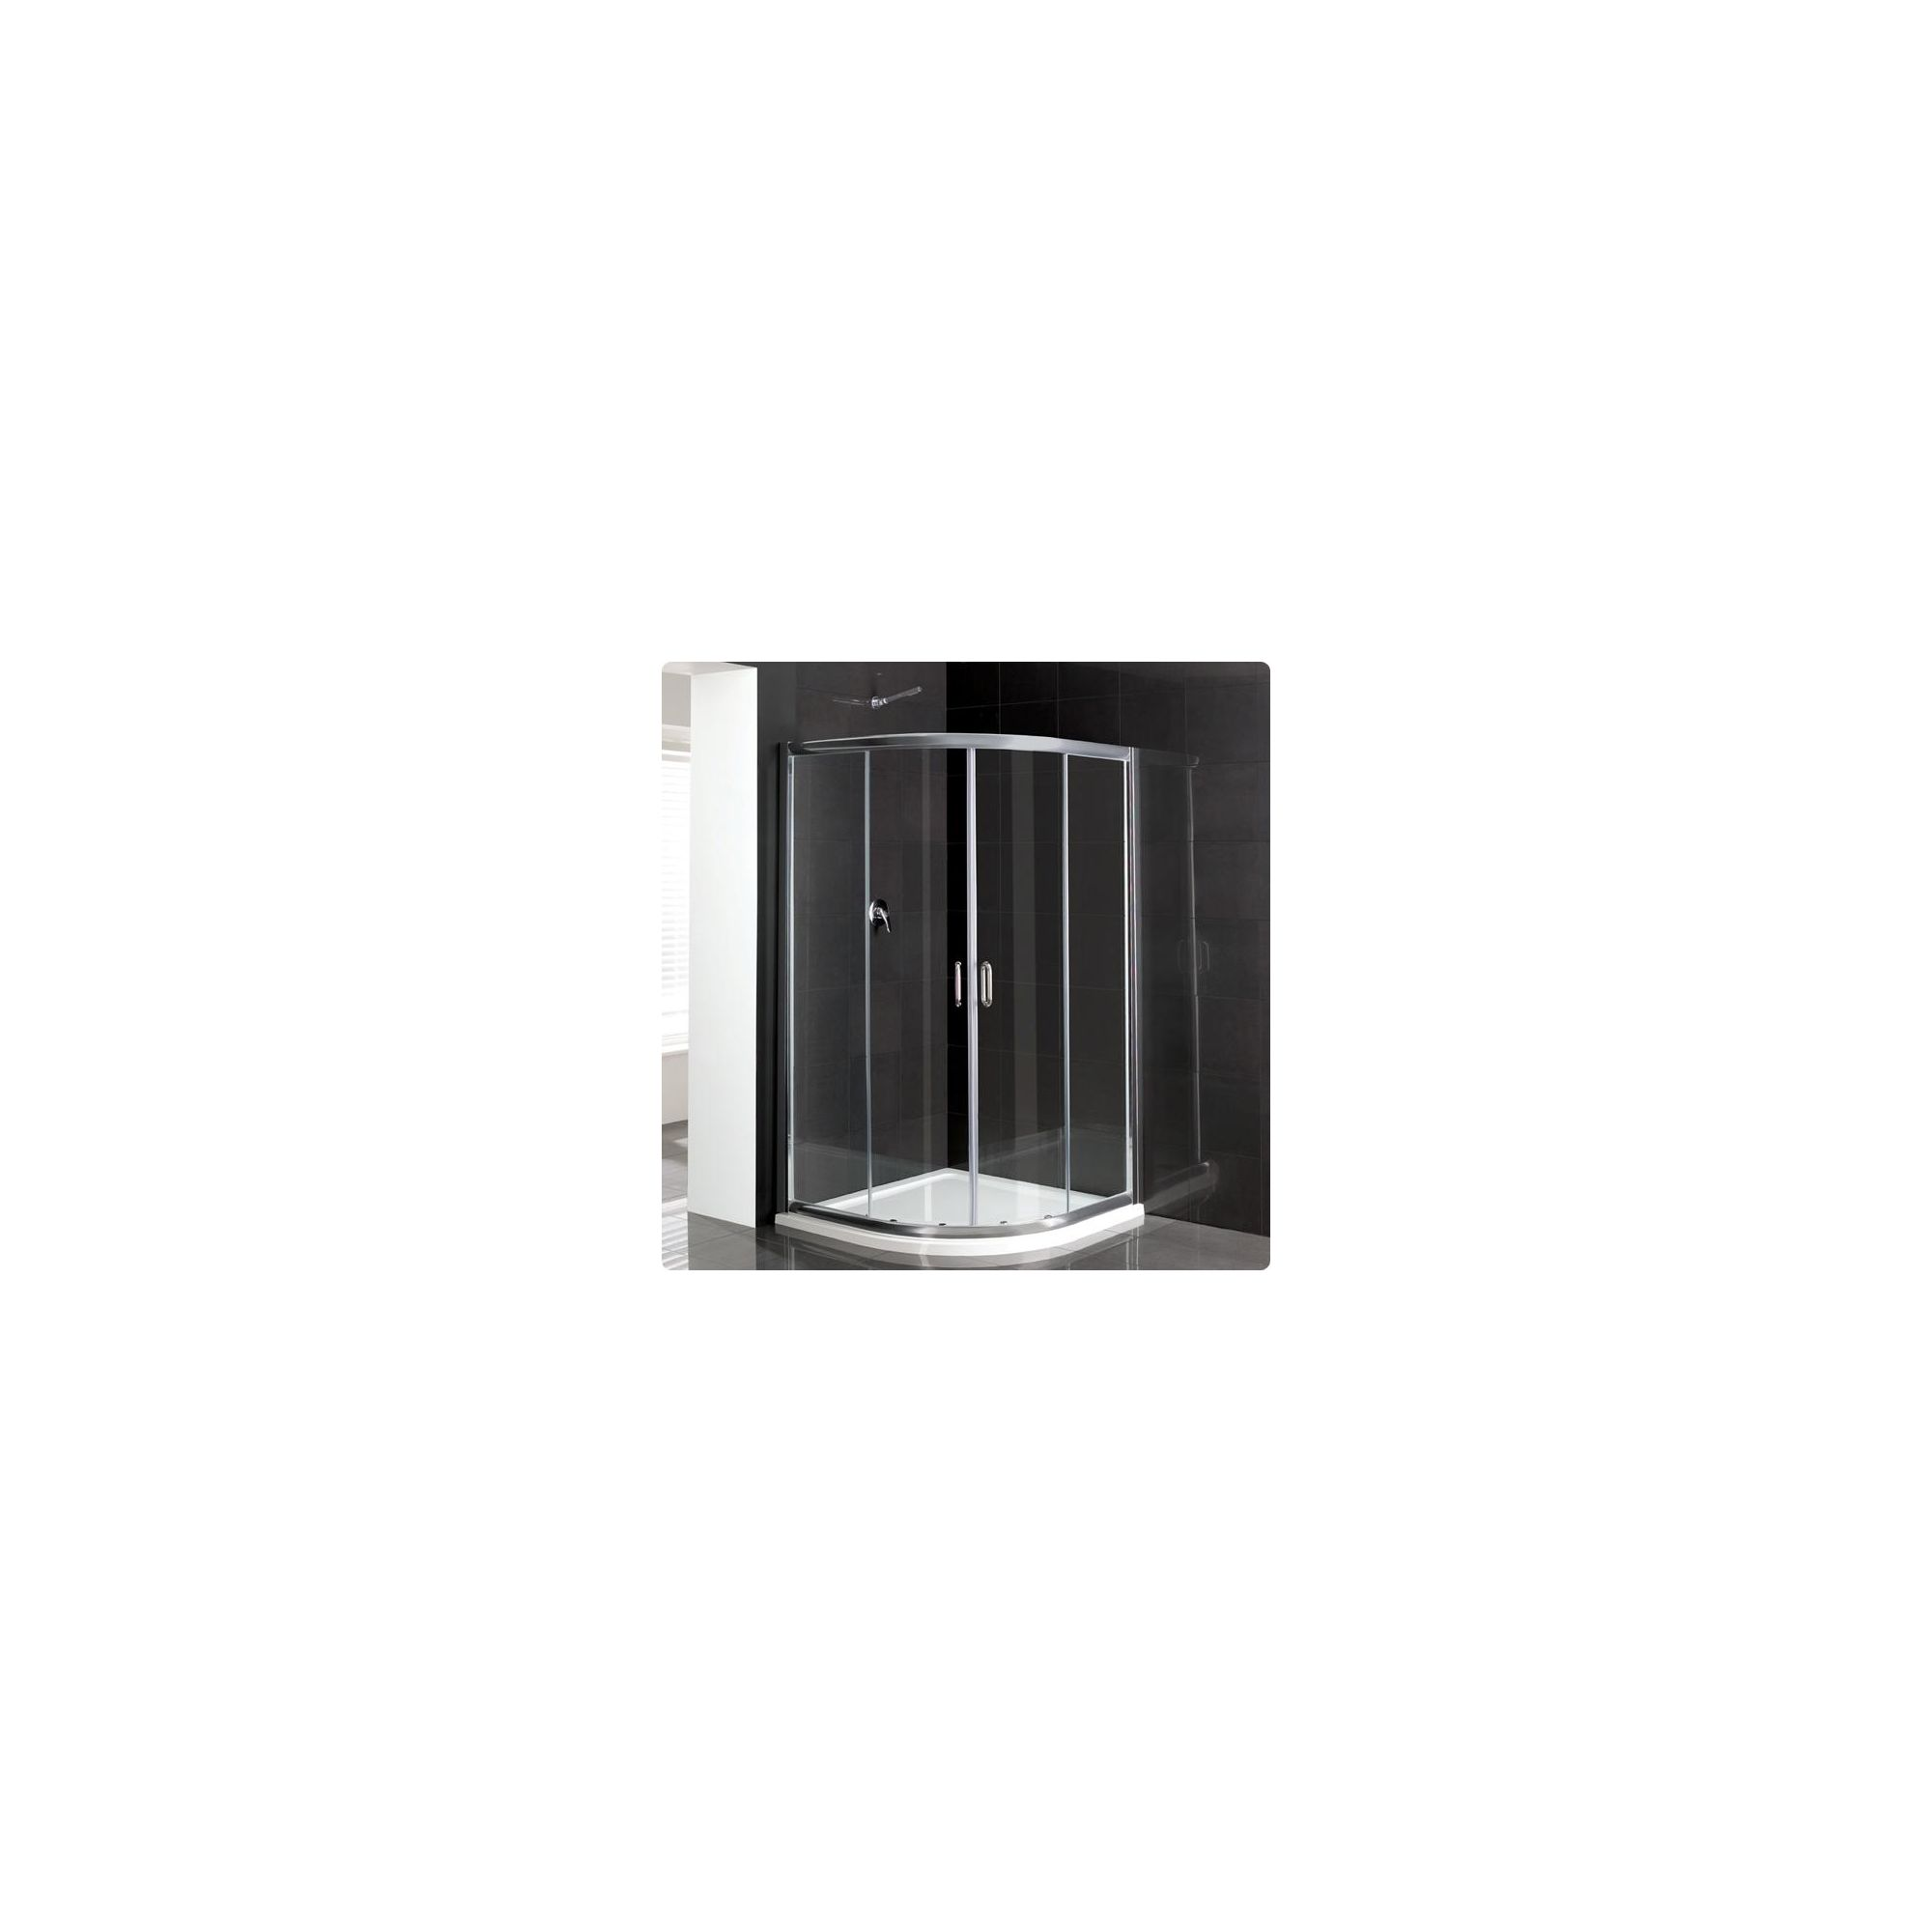 Duchy Elite Silver Quadrant Shower Enclosure 800mm, Standard Tray, 6mm Glass at Tesco Direct